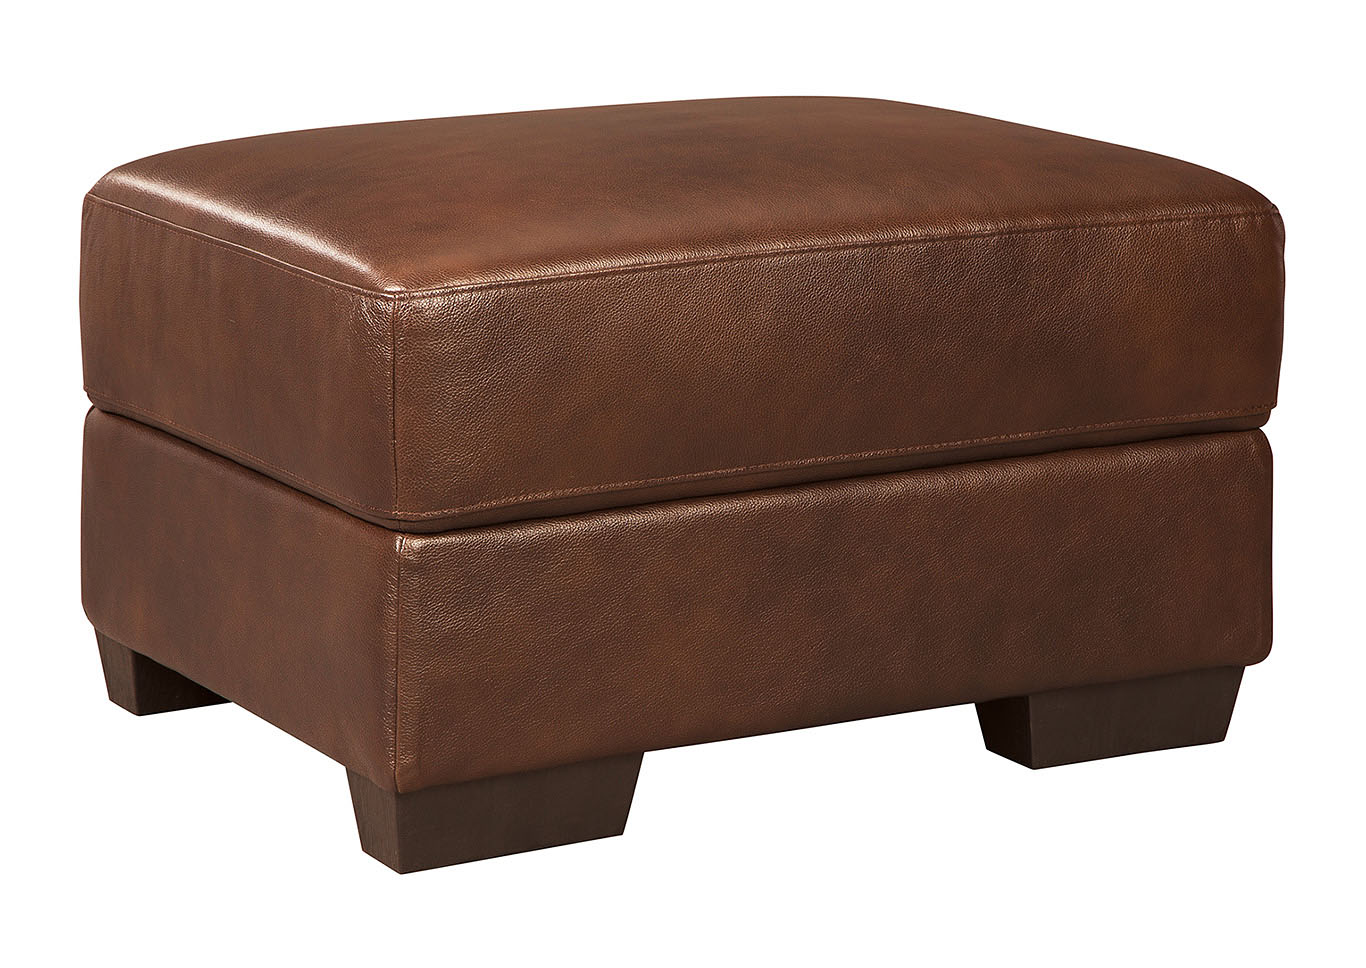 Fontenot Chocolate Ottoman,Signature Design By Ashley